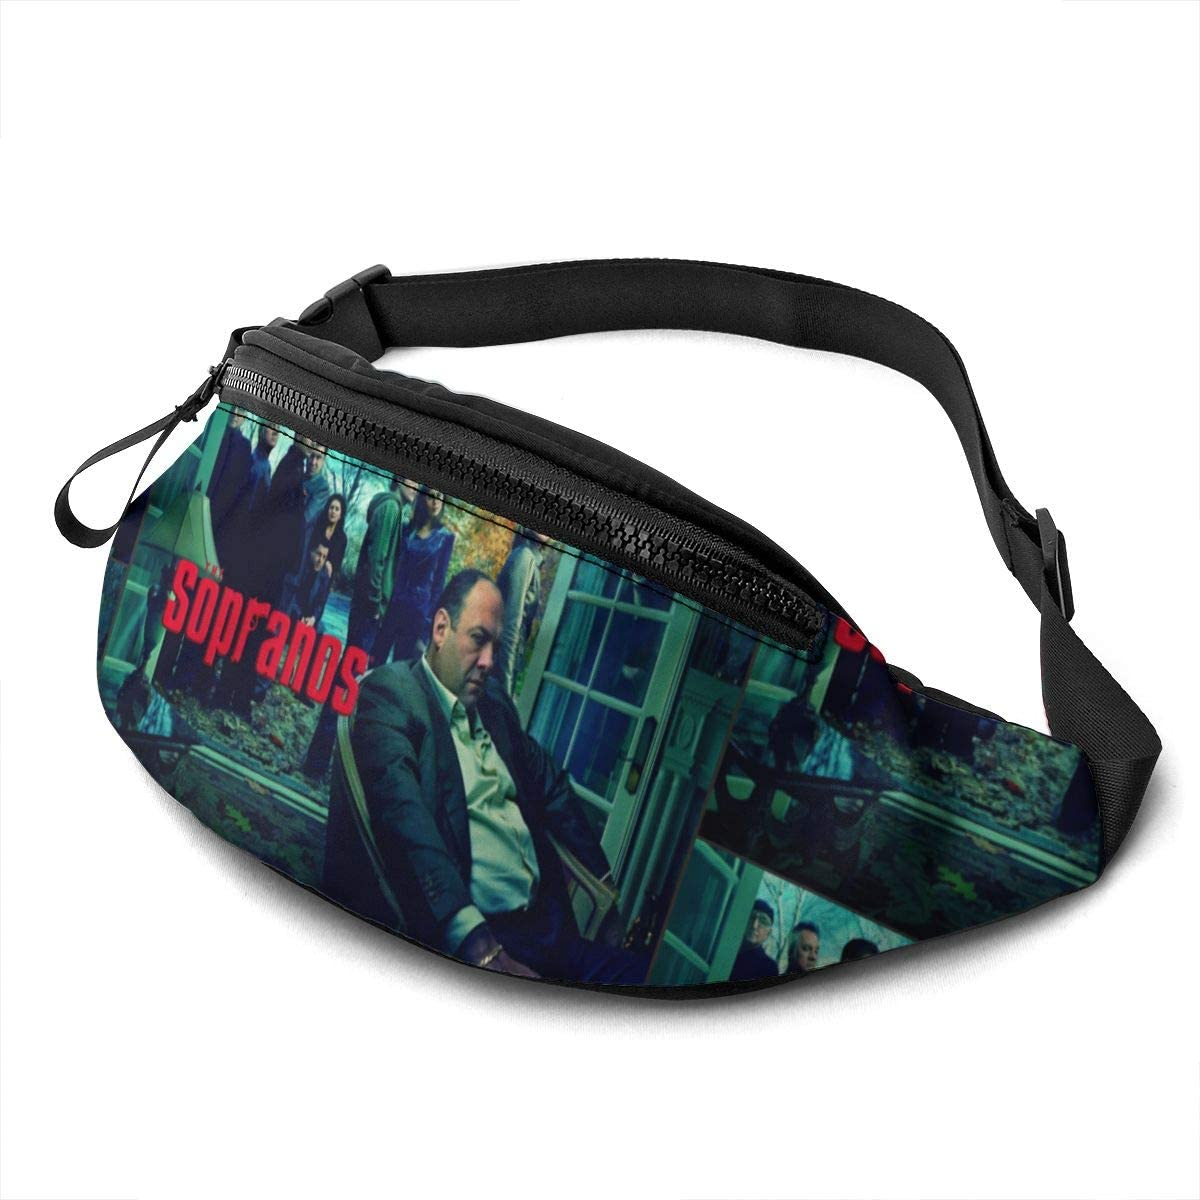 Qwertyi The Sopranos Unisex Running Waist Packs Casual Waist Bag, Can Hold Small Objects Such As Mobile Phones